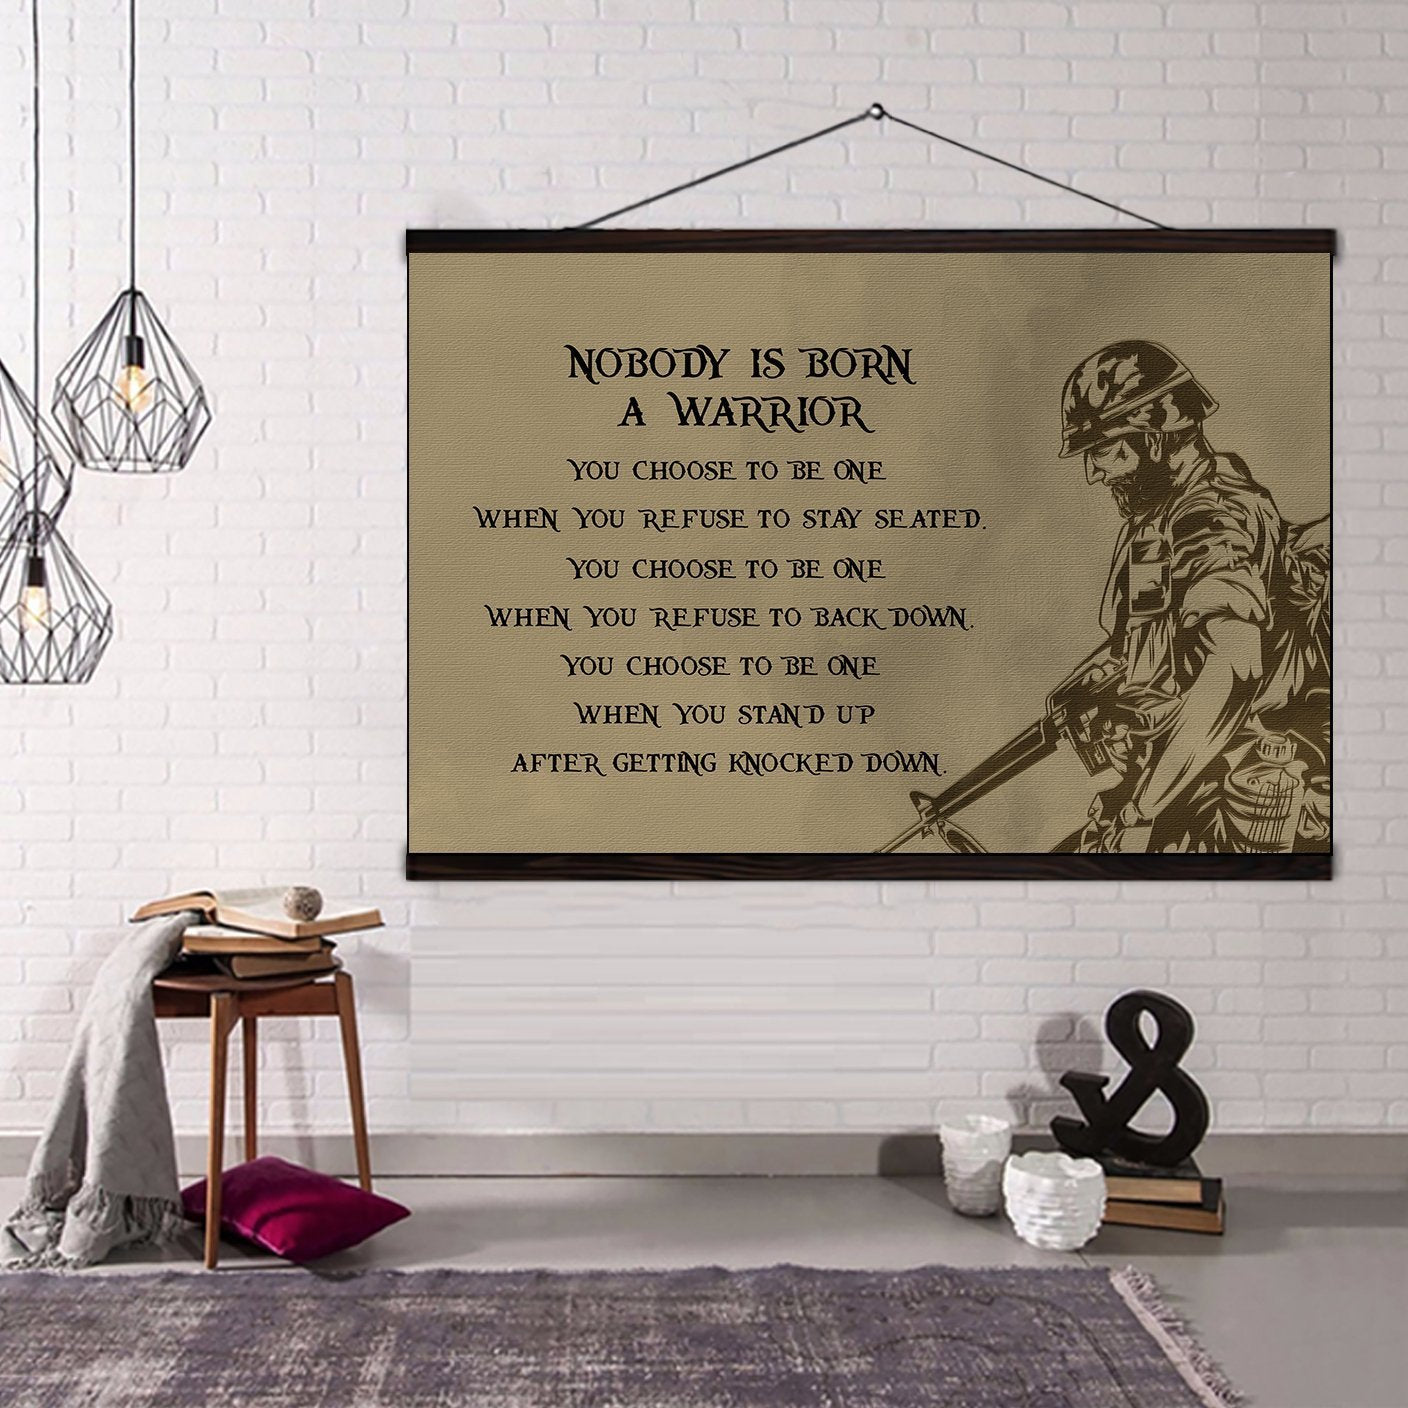 (CV208) soldier canvas with the wood frame - nobody is born a warrior